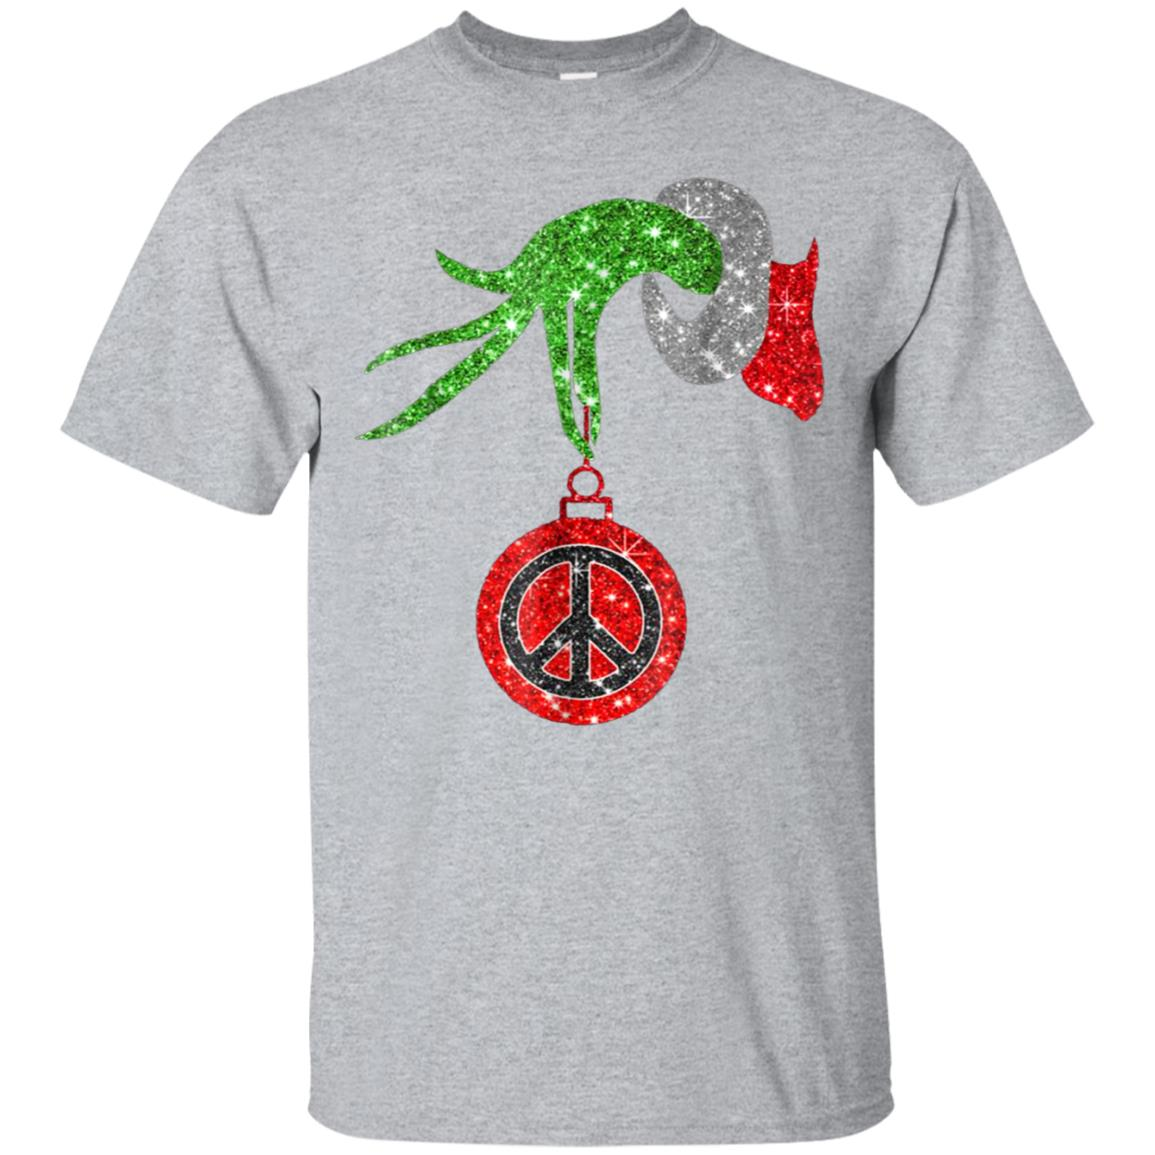 Funny-Grinch-Hand holding peace sign ornament t-shirt 99promocode